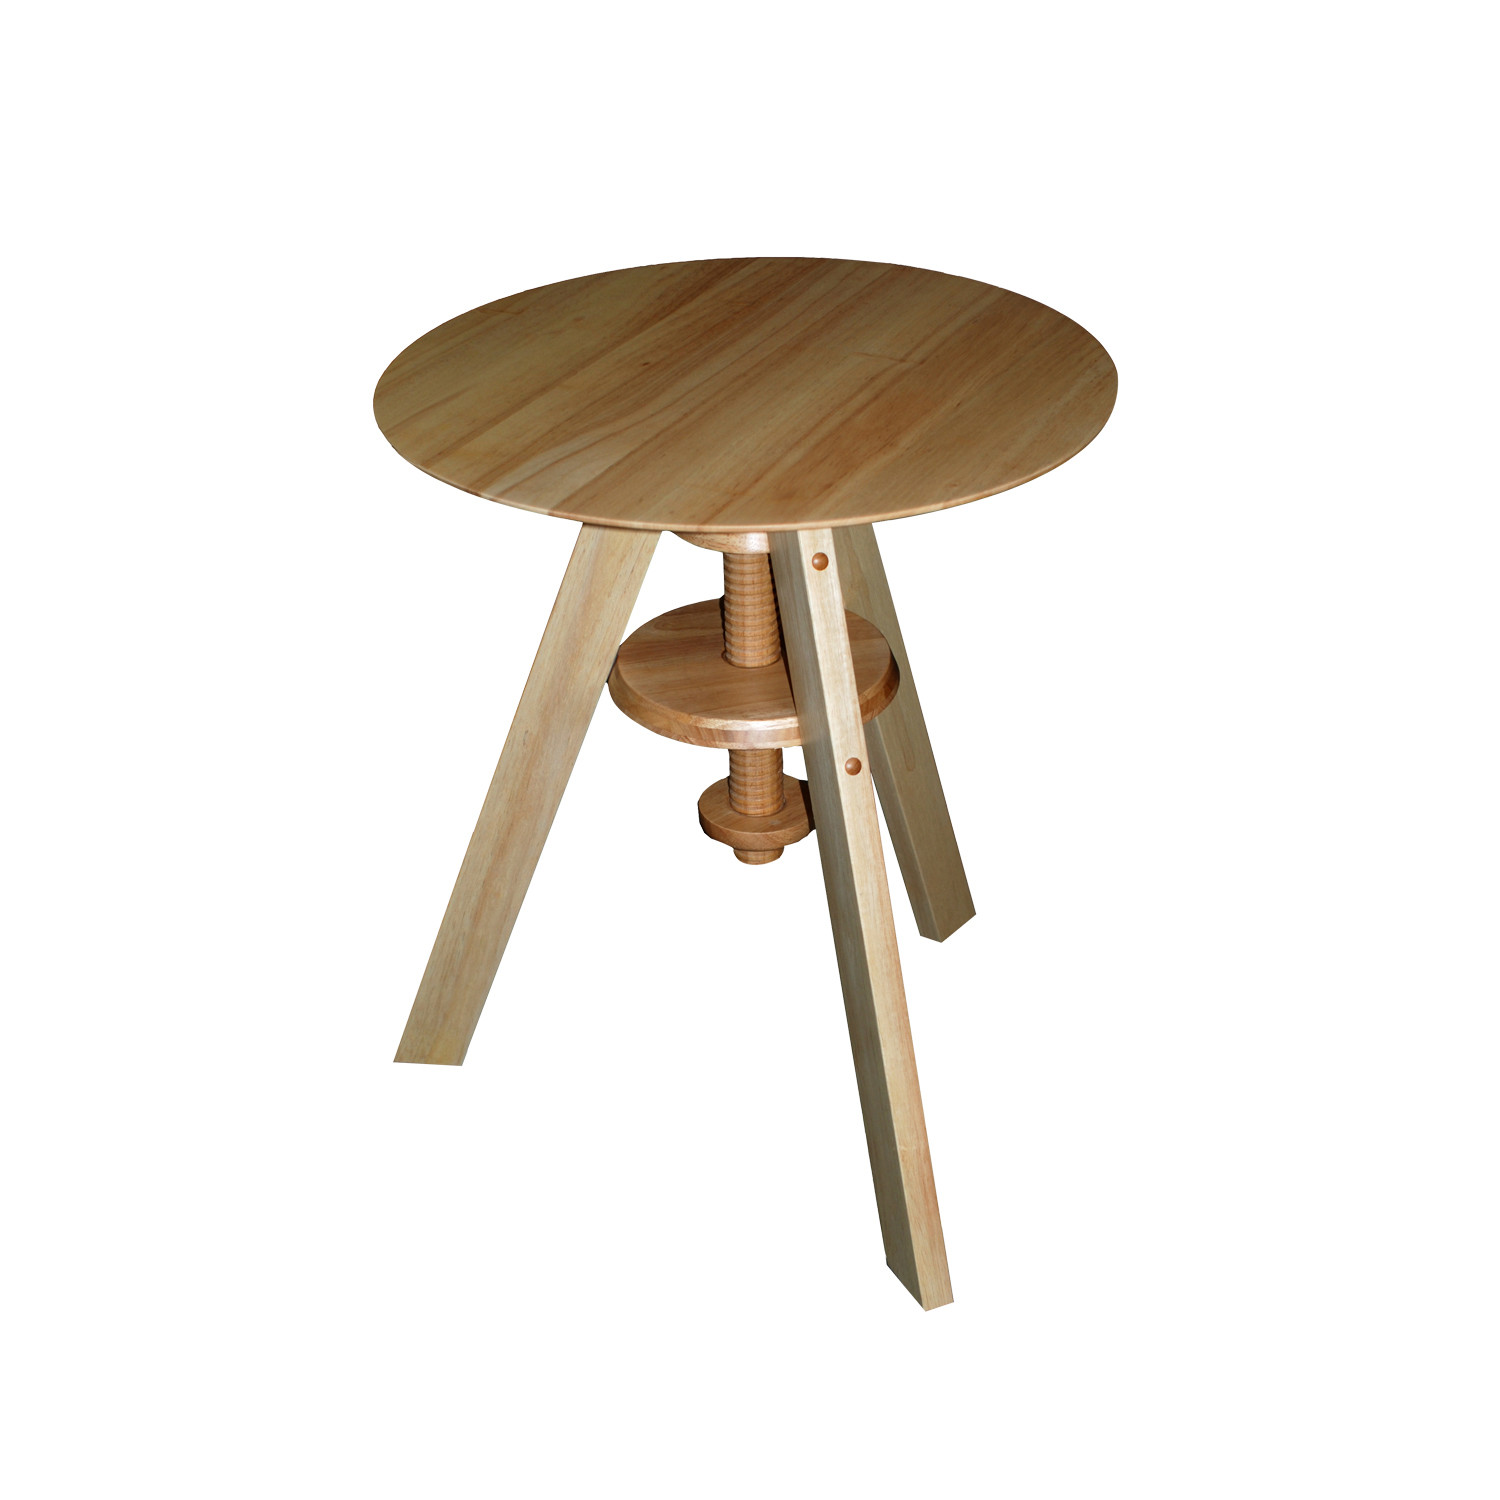 Rubber wood round table